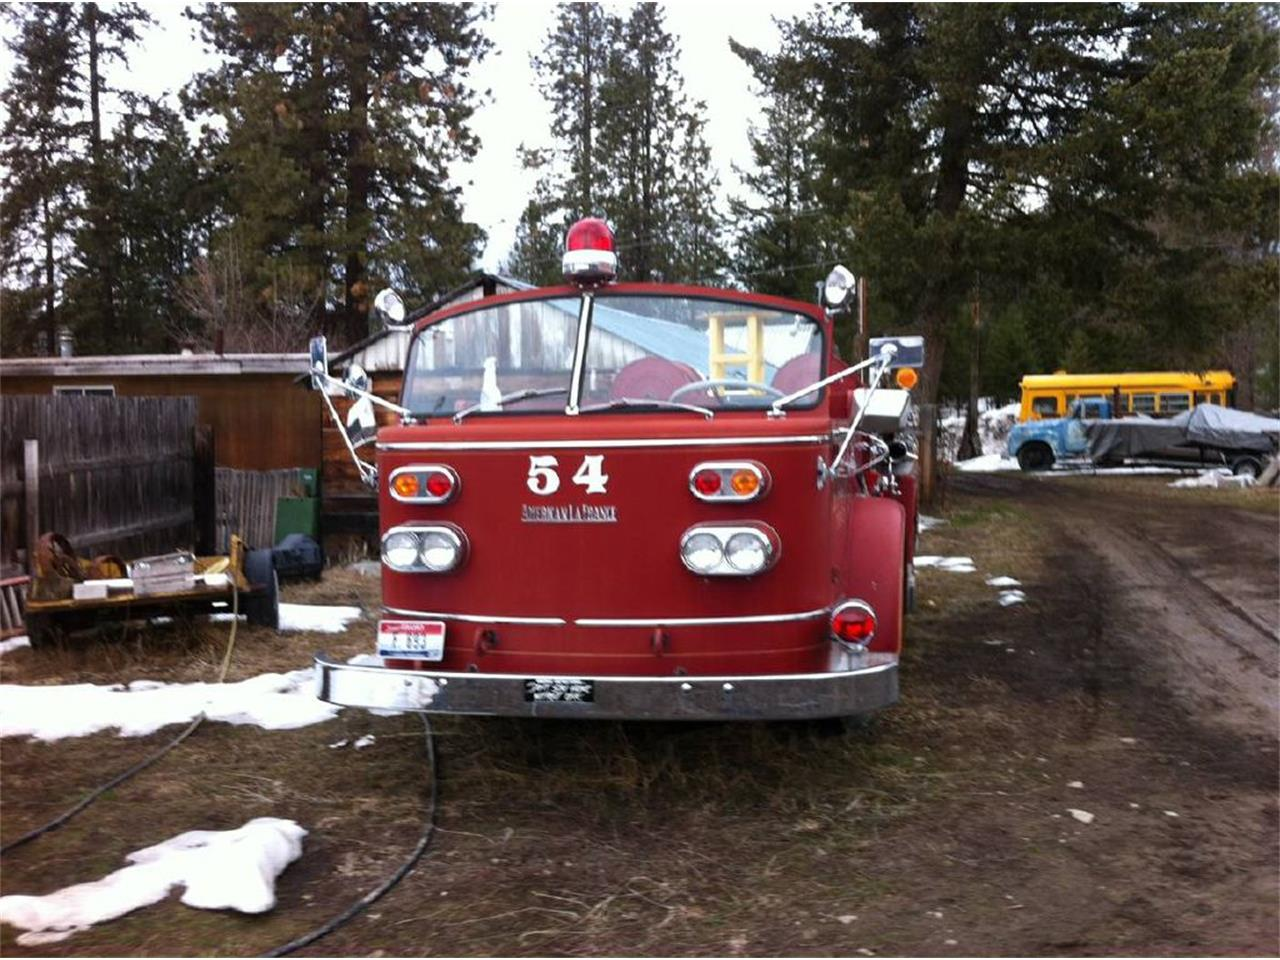 1954 American Lafrance Fire Engine For Sale Classiccars